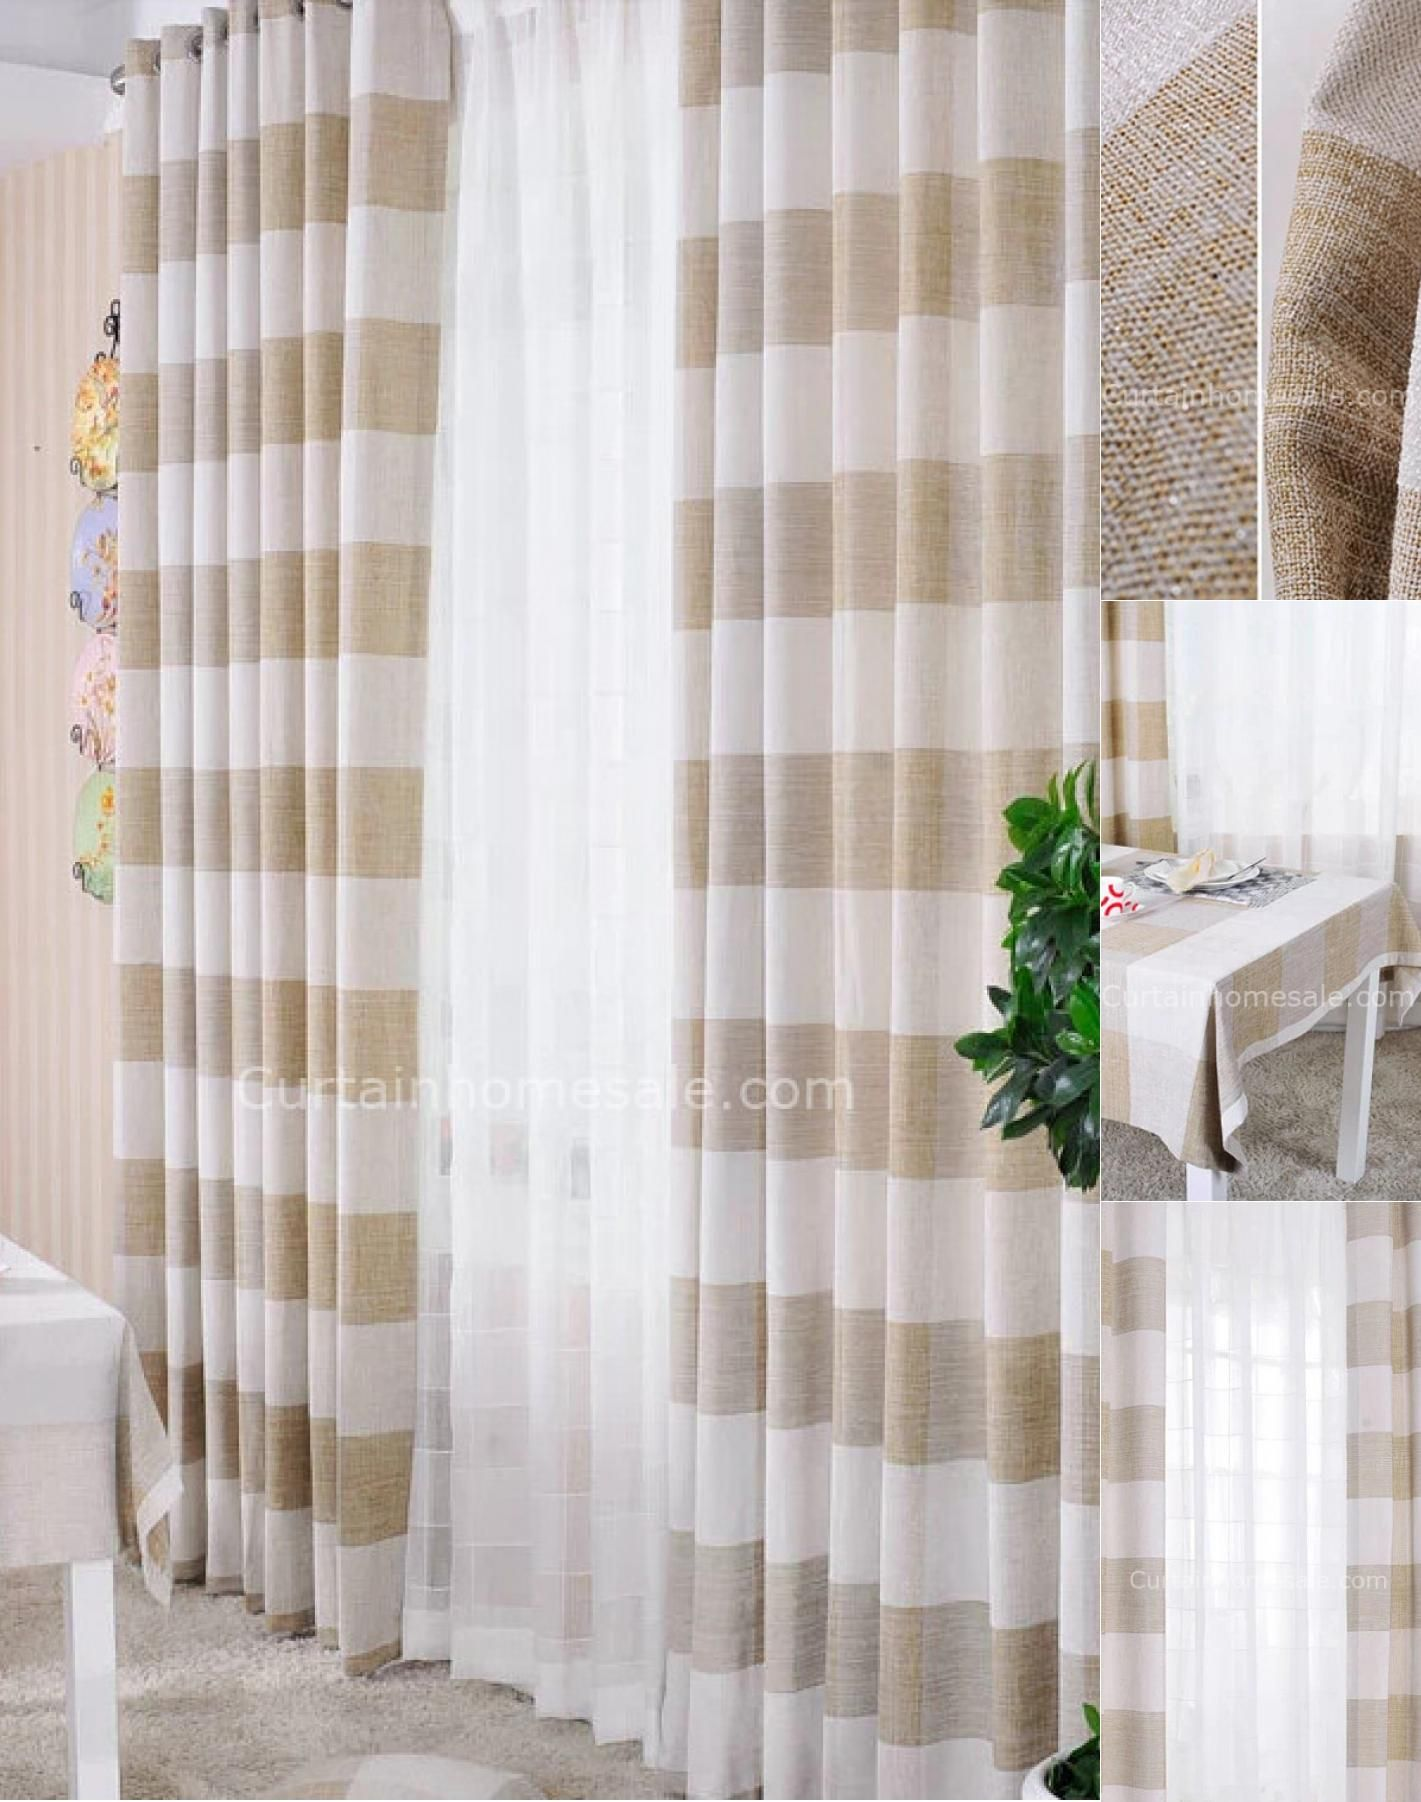 Country Style Striped Light Brown Patterned Curtains Of Chenille